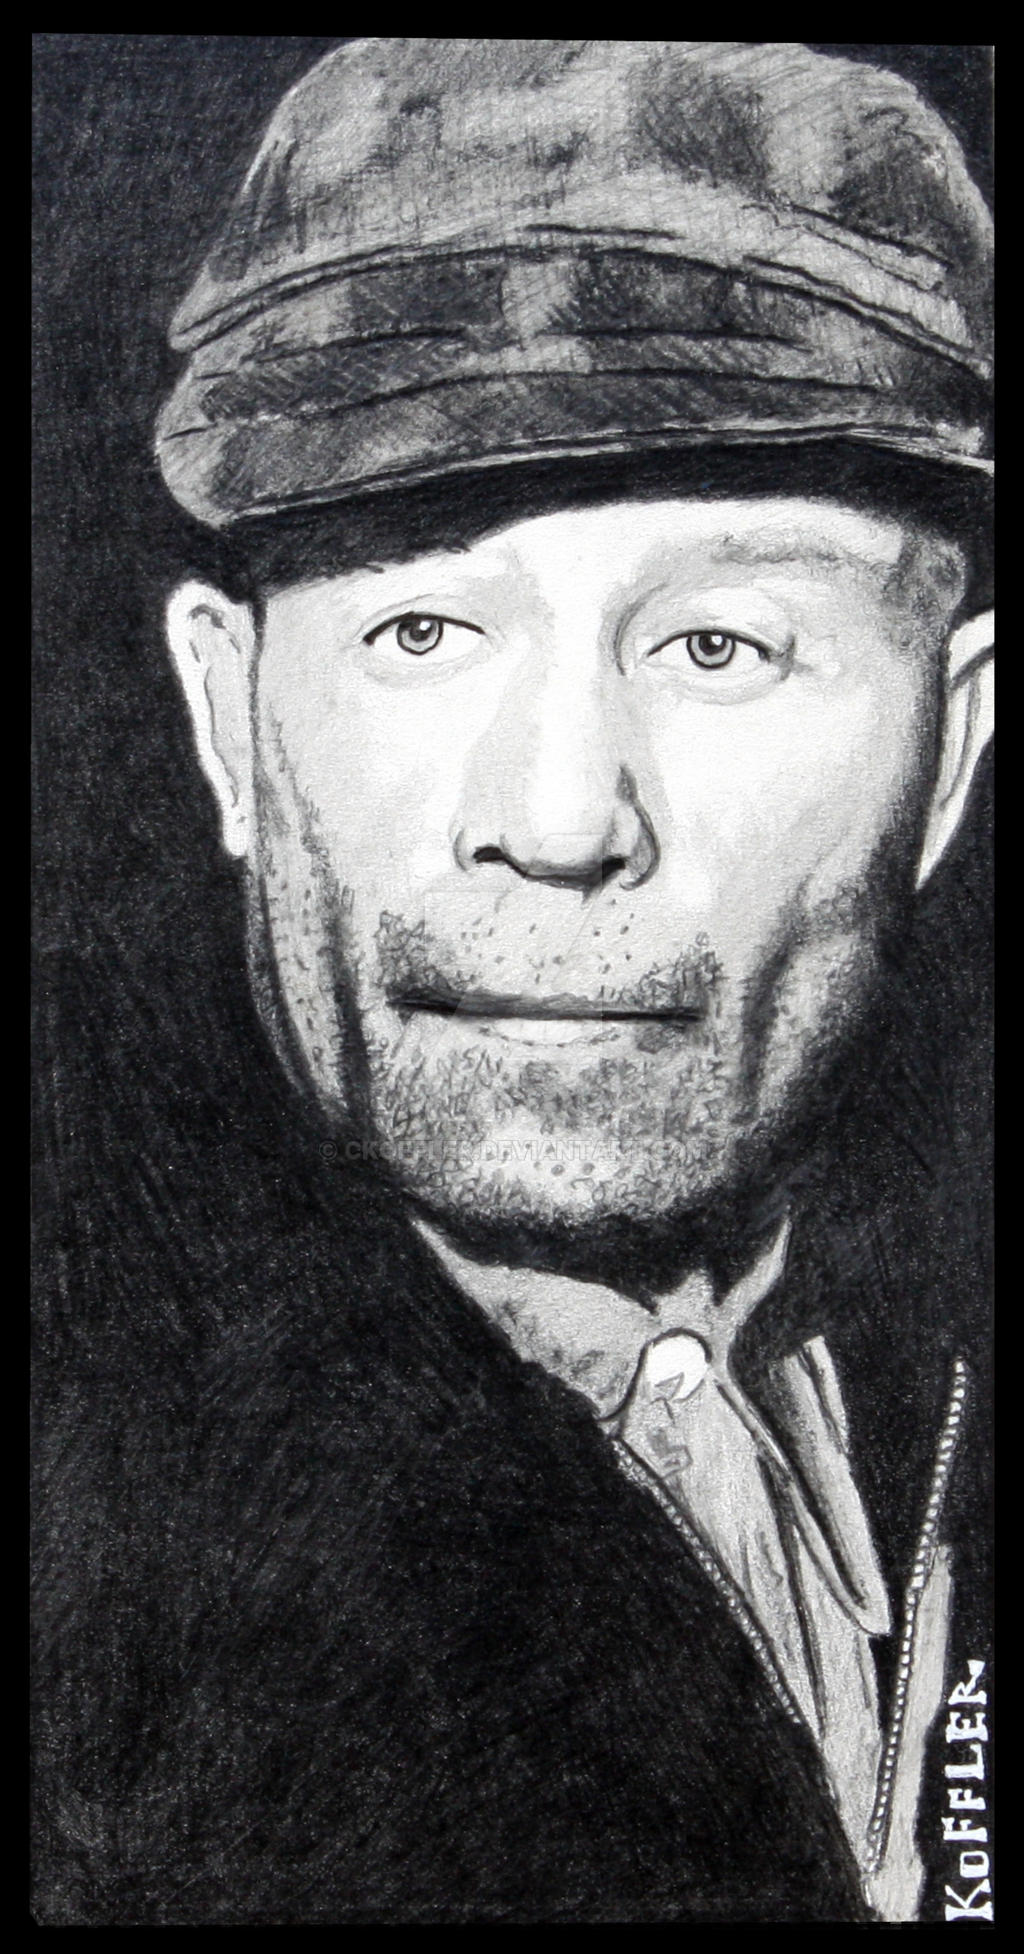 ed gein serial killer Few convicted killers in the long, violent annals of american crime come close to  ed gein for depravity and -- it should be said -- for pop-culture.